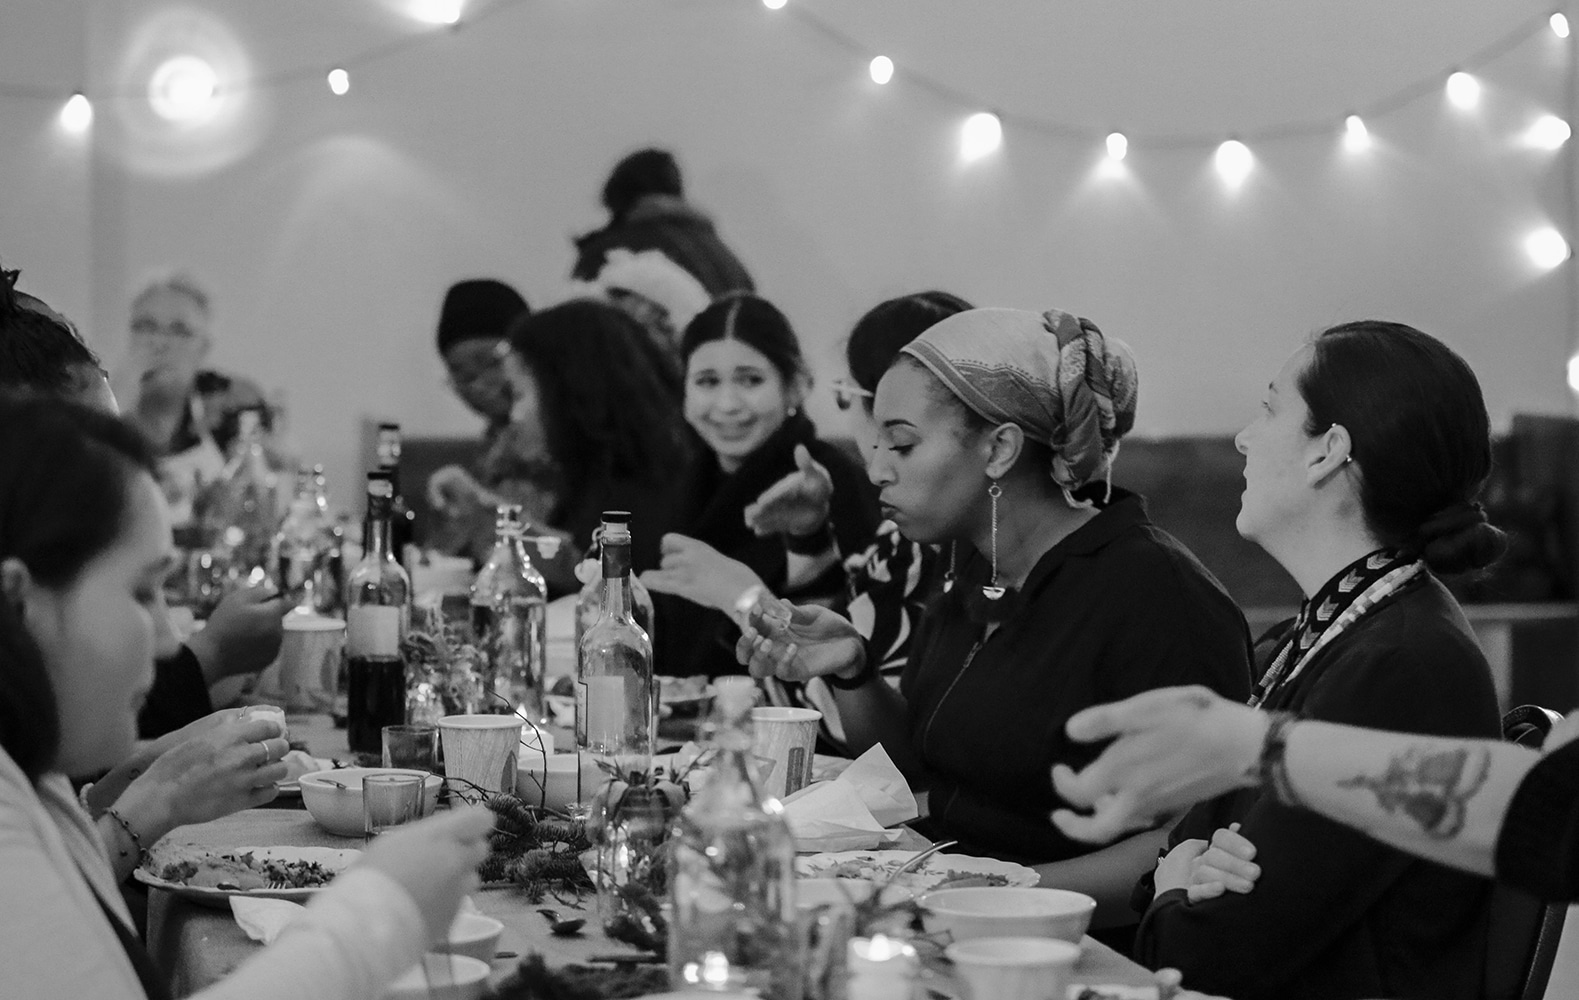 Black and white image of several women at a long table, eating, talking, laughing.